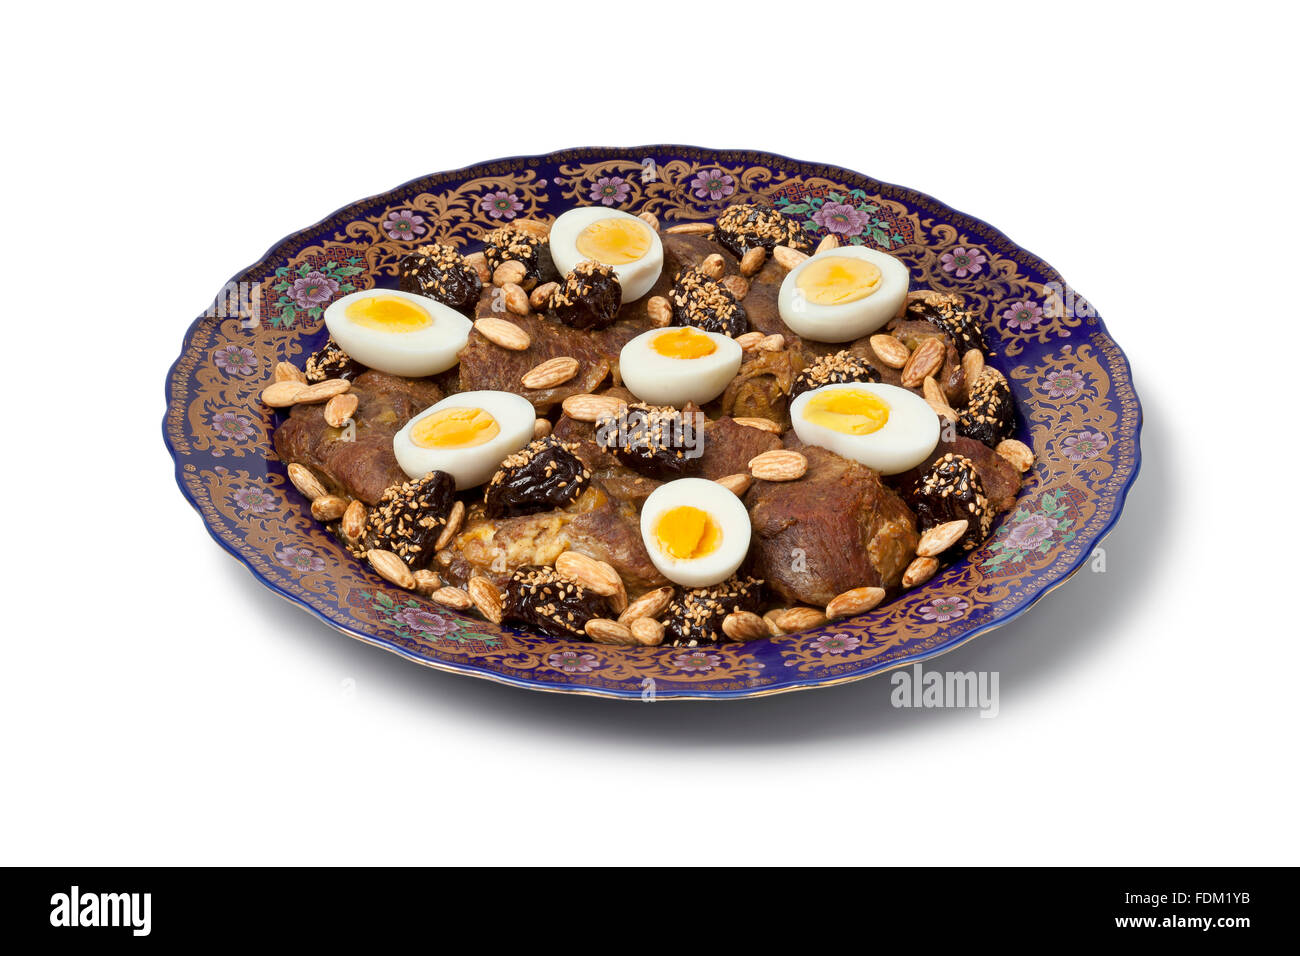 Moroccan festivity dish with meat, plums,almonds and eggs on white background - Stock Image